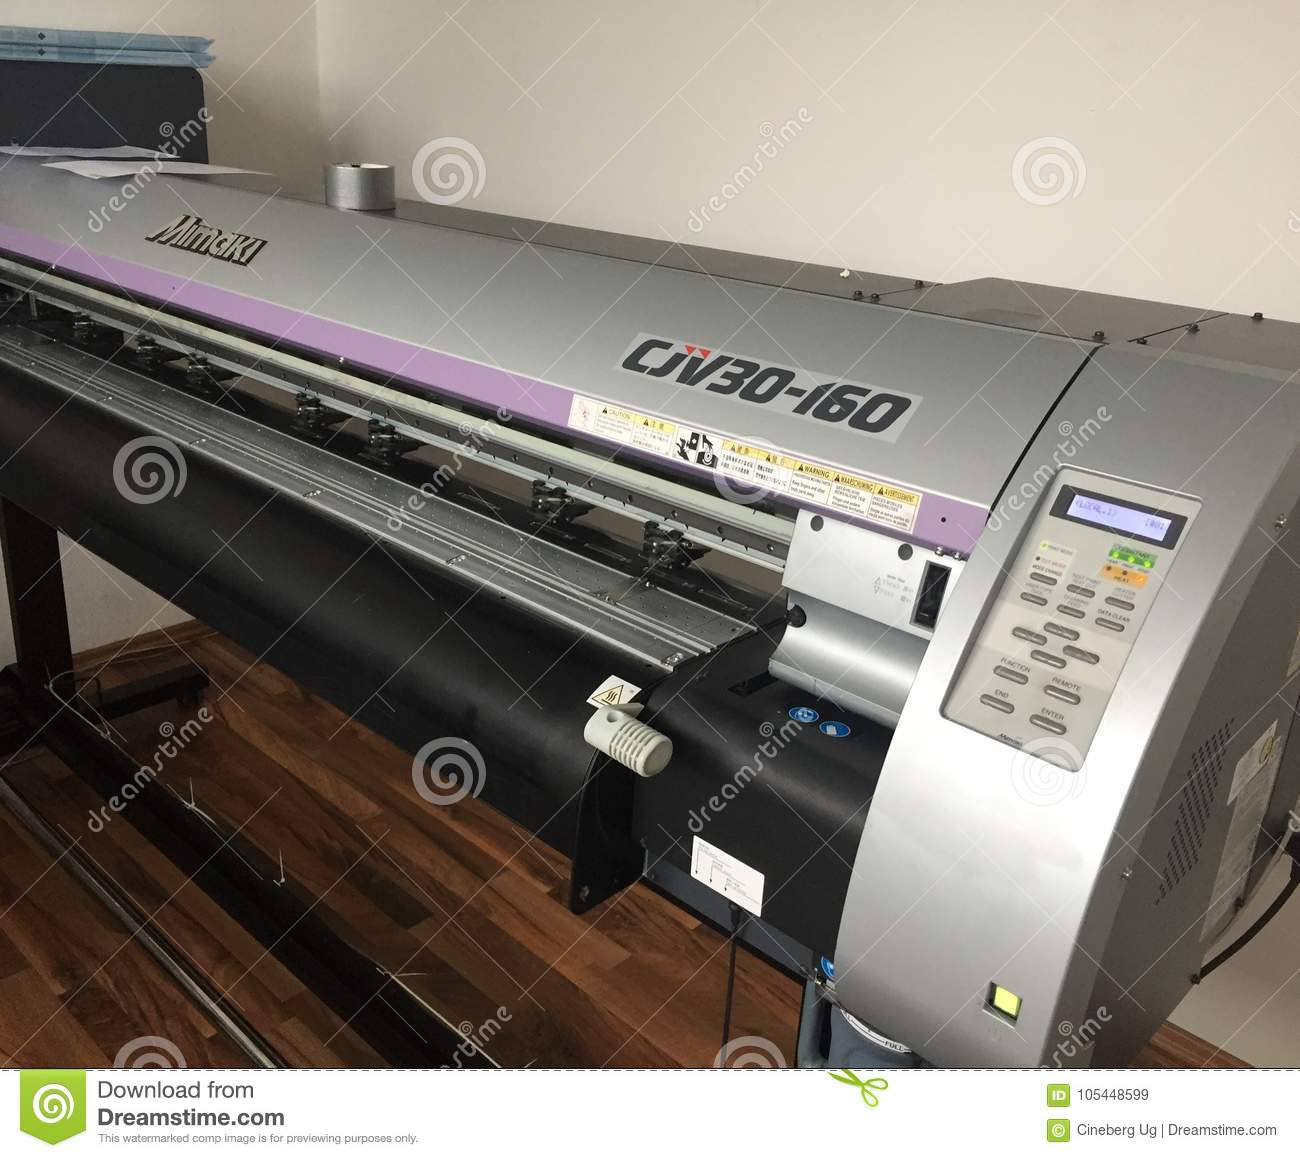 Mimaki Flatbed Cutting Plotter Editorial Stock Image - Image of